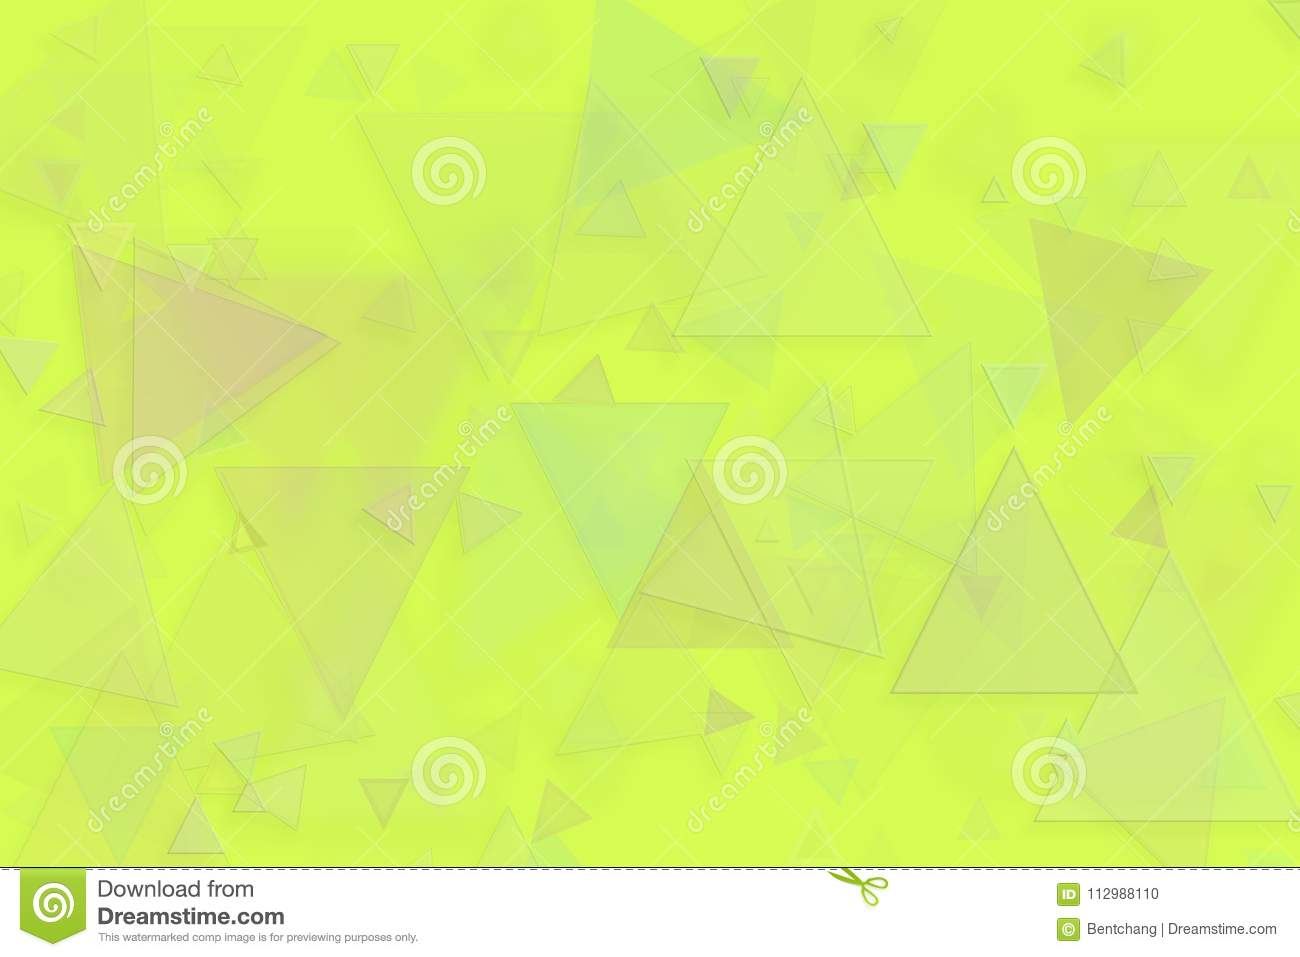 Shape illustrations background abstract, pattern texture. Fashion, digital, creative & surface.